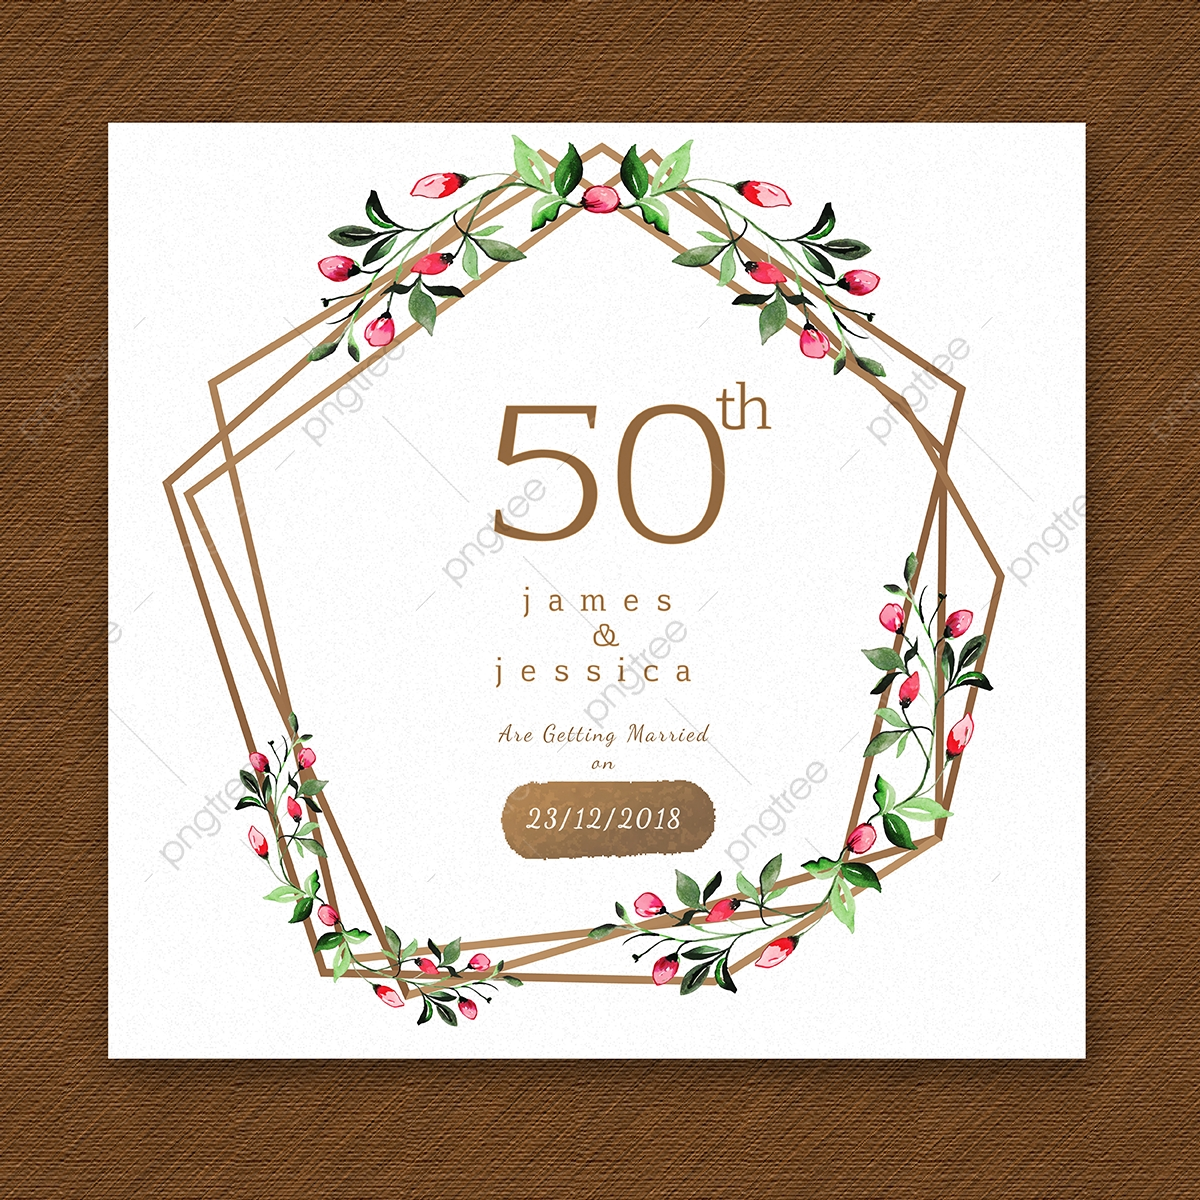 Watercolor Floral Happy Anniversary Wooden Frame Invitation